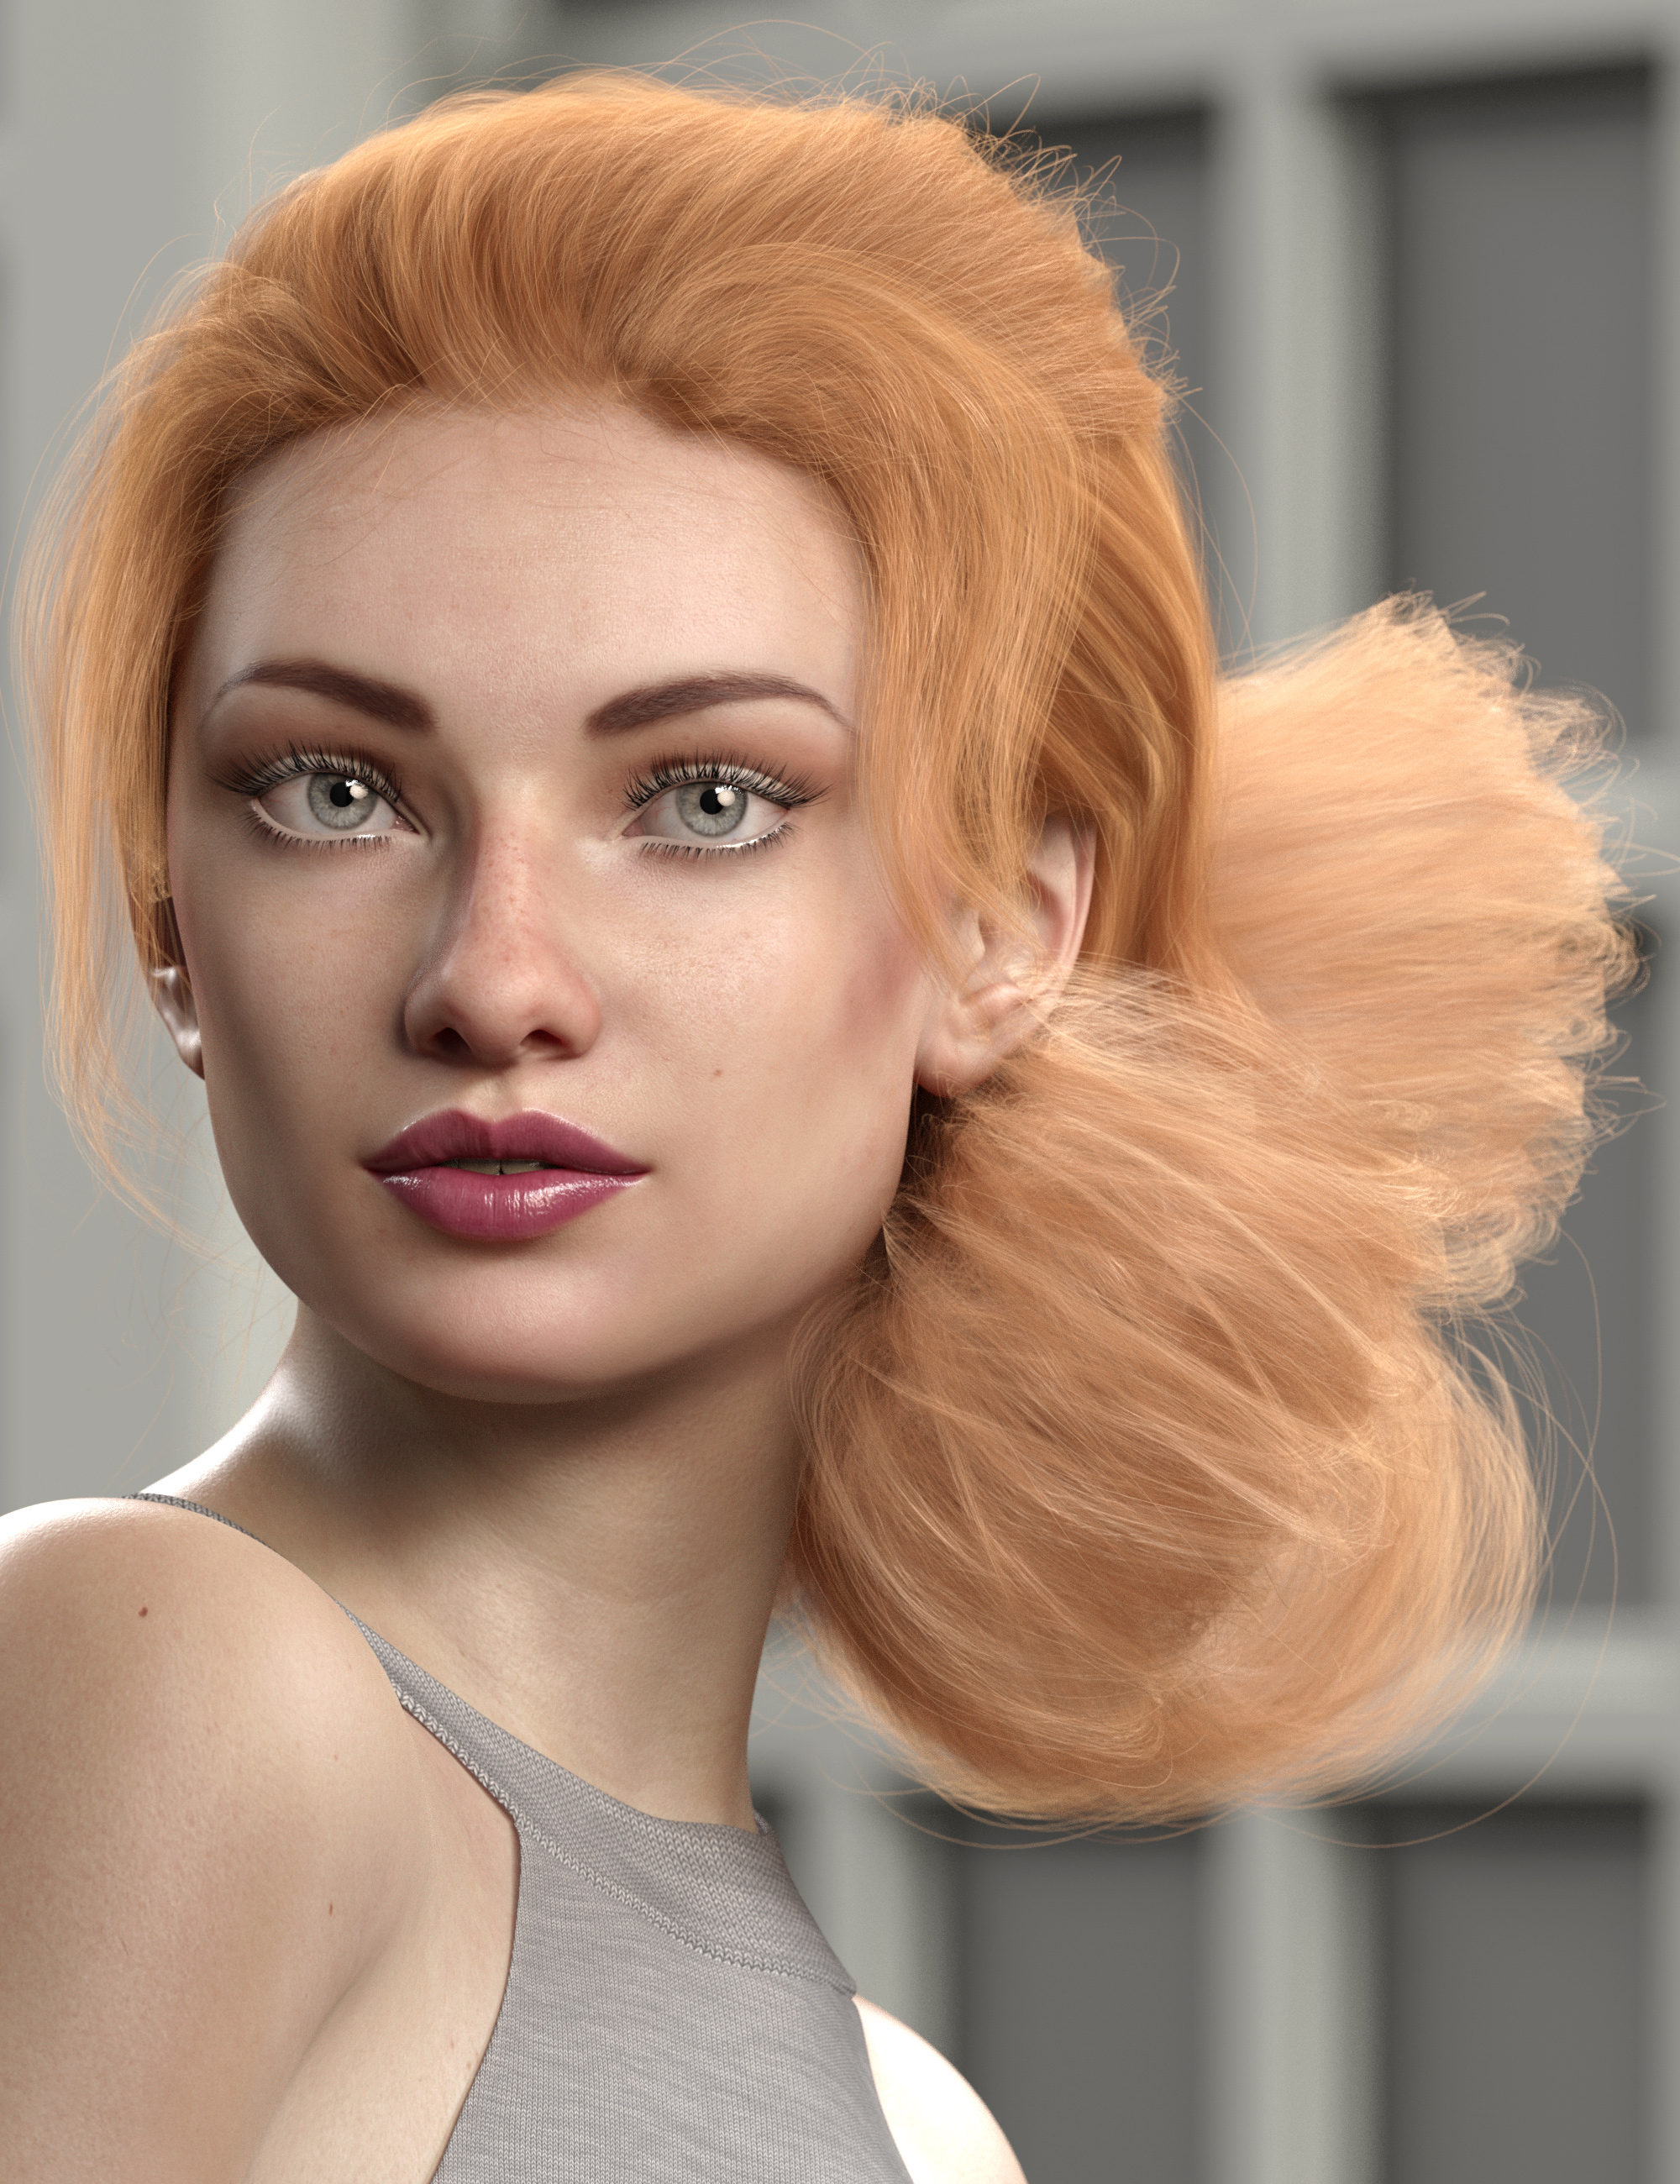 Texture Expansion for Low Updo Hair by: outoftouch, 3D Models by Daz 3D